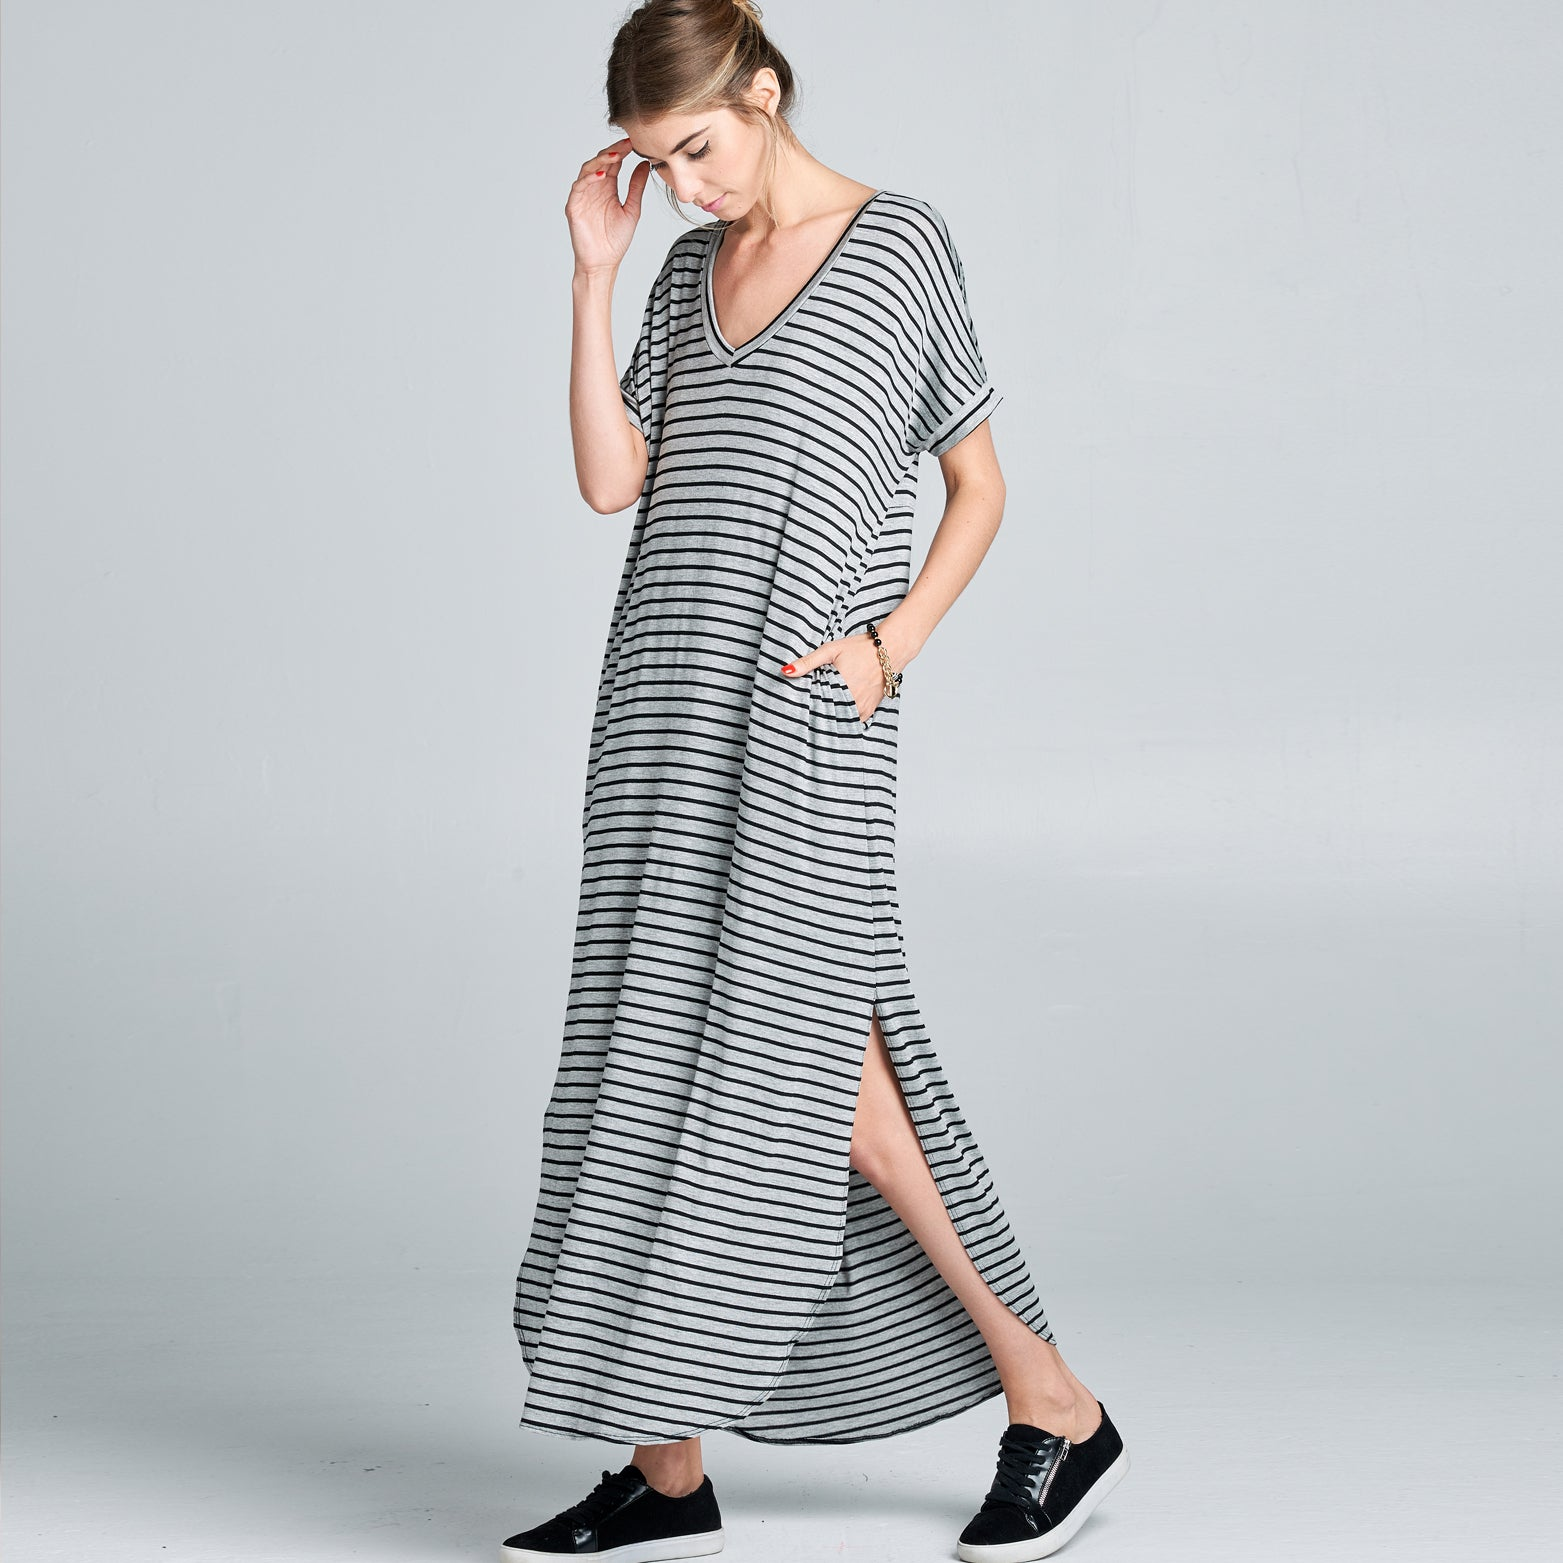 RL Grey Black Striped Maxi Dress